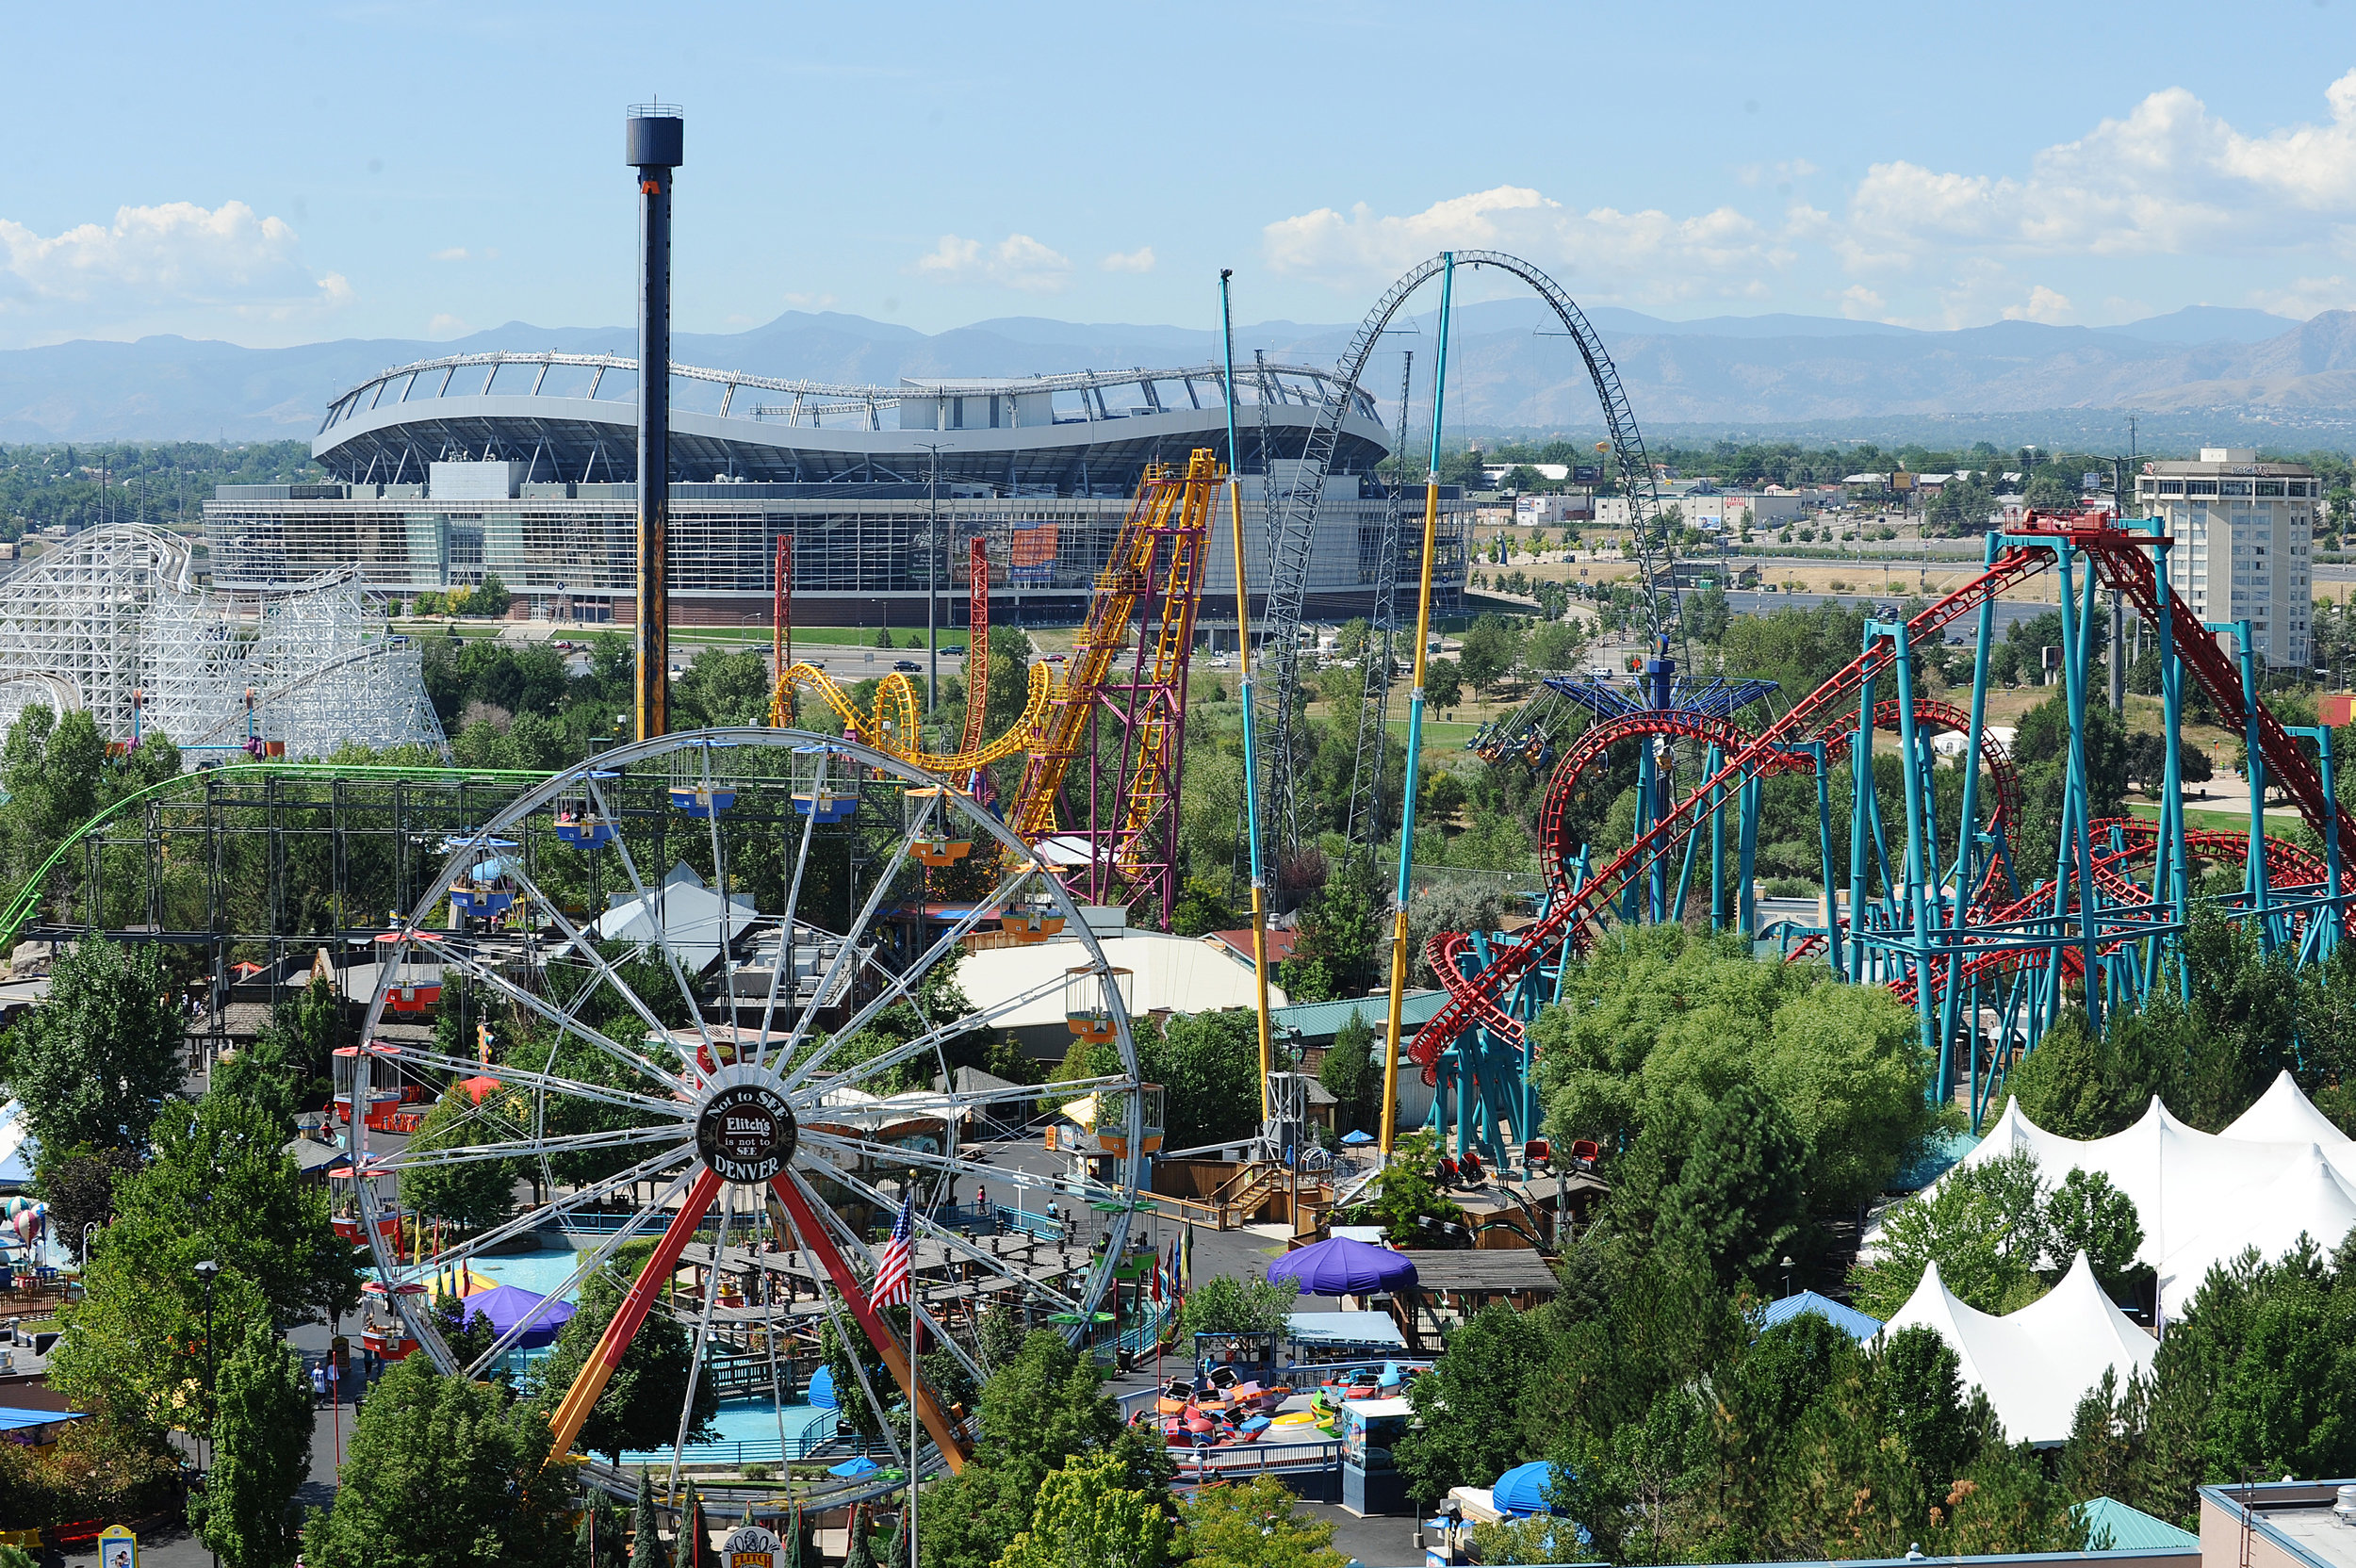 Elitch's and Sports Authority Field in the background.